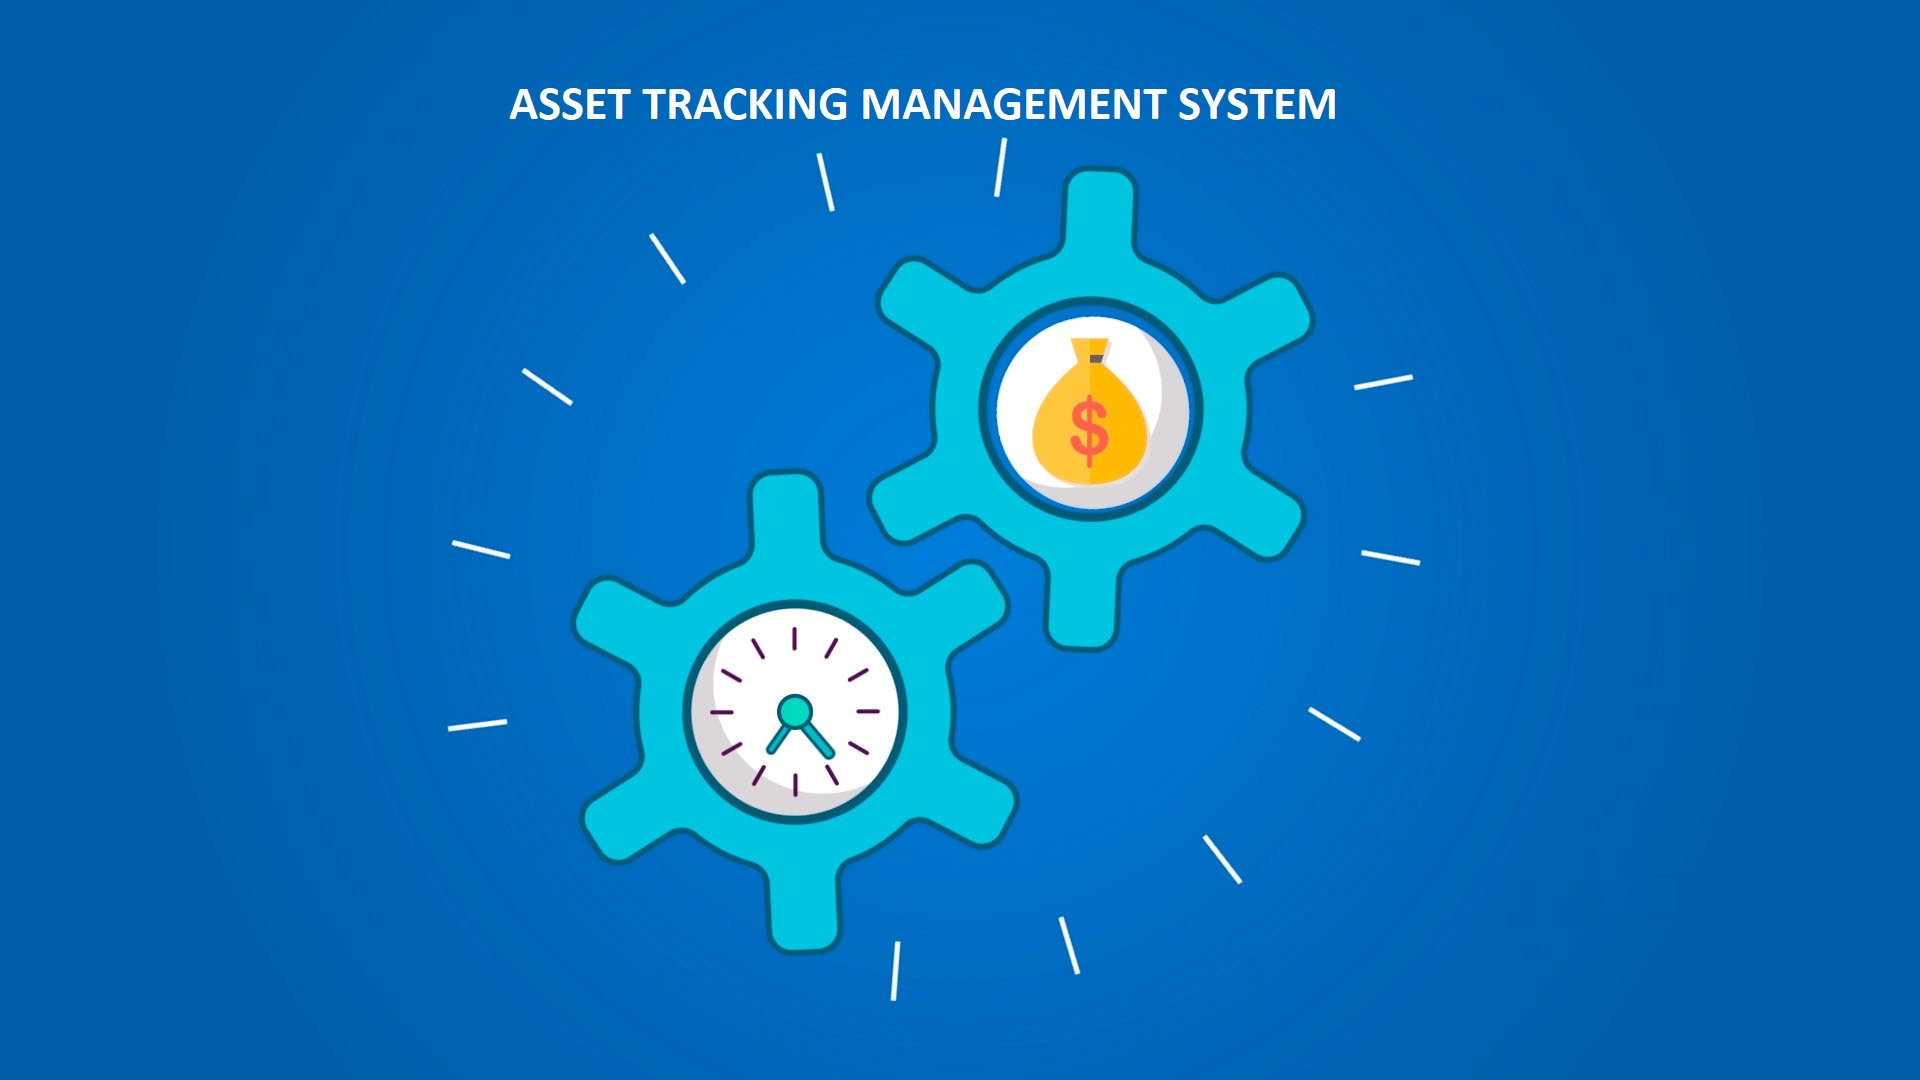 How Beneficial is Asset Tracking Management System?